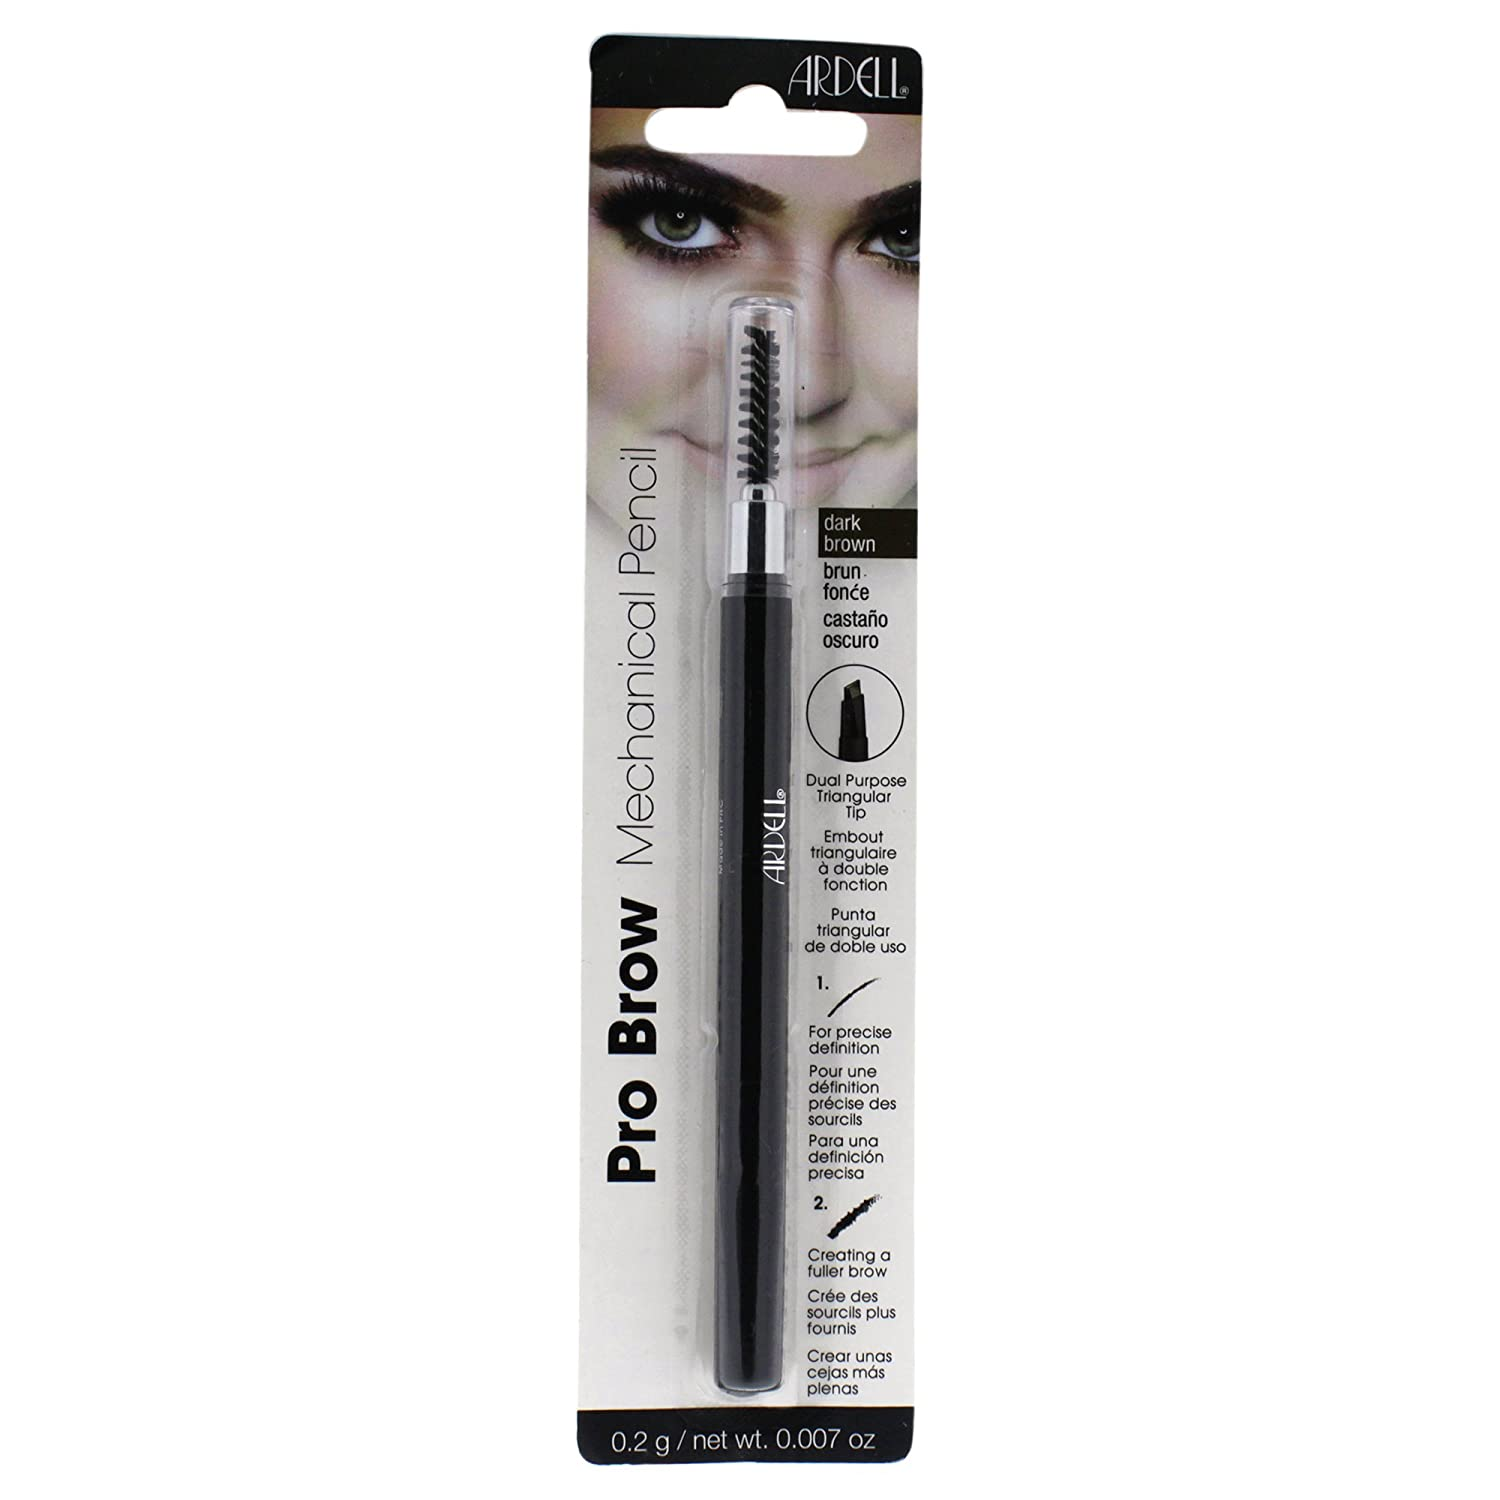 Amazon.com : Ardell Brow Pro Mechanical Pencil - Dark Brown 0.2g : Beauty